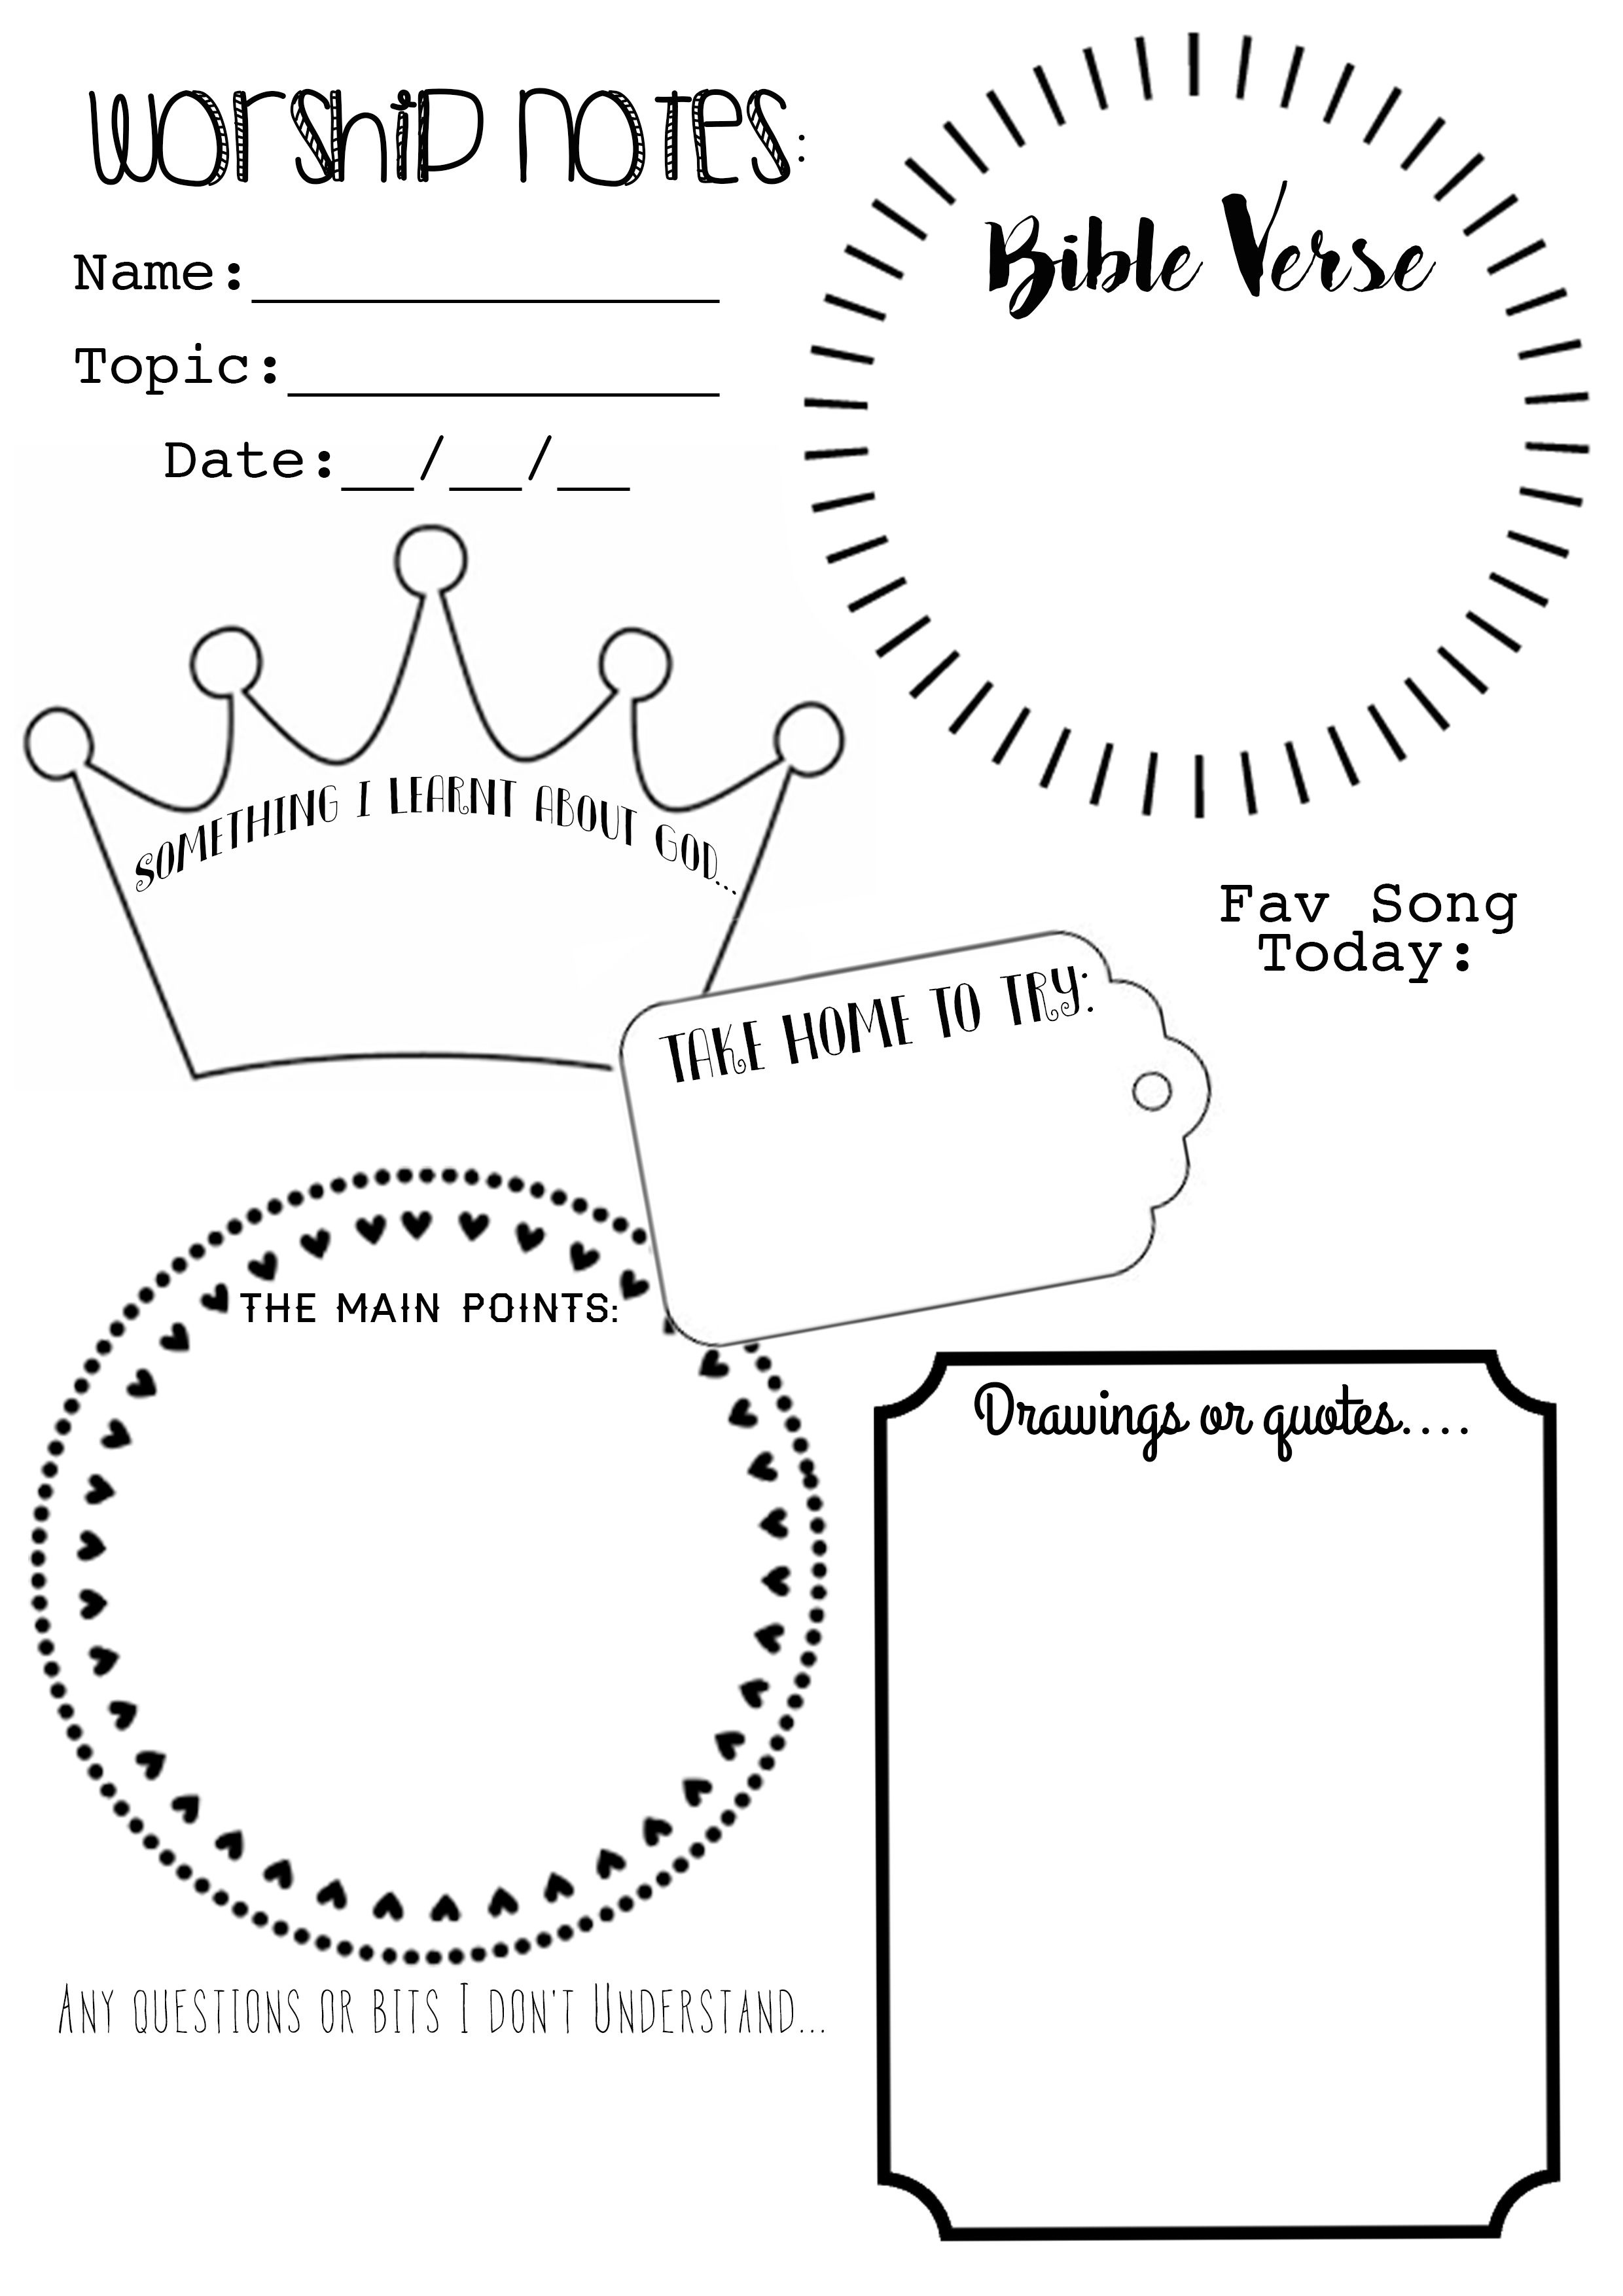 I've Made Up A Worship Notes/ Sermon Notes Free Printable For The - Free Printable Easter Sermons